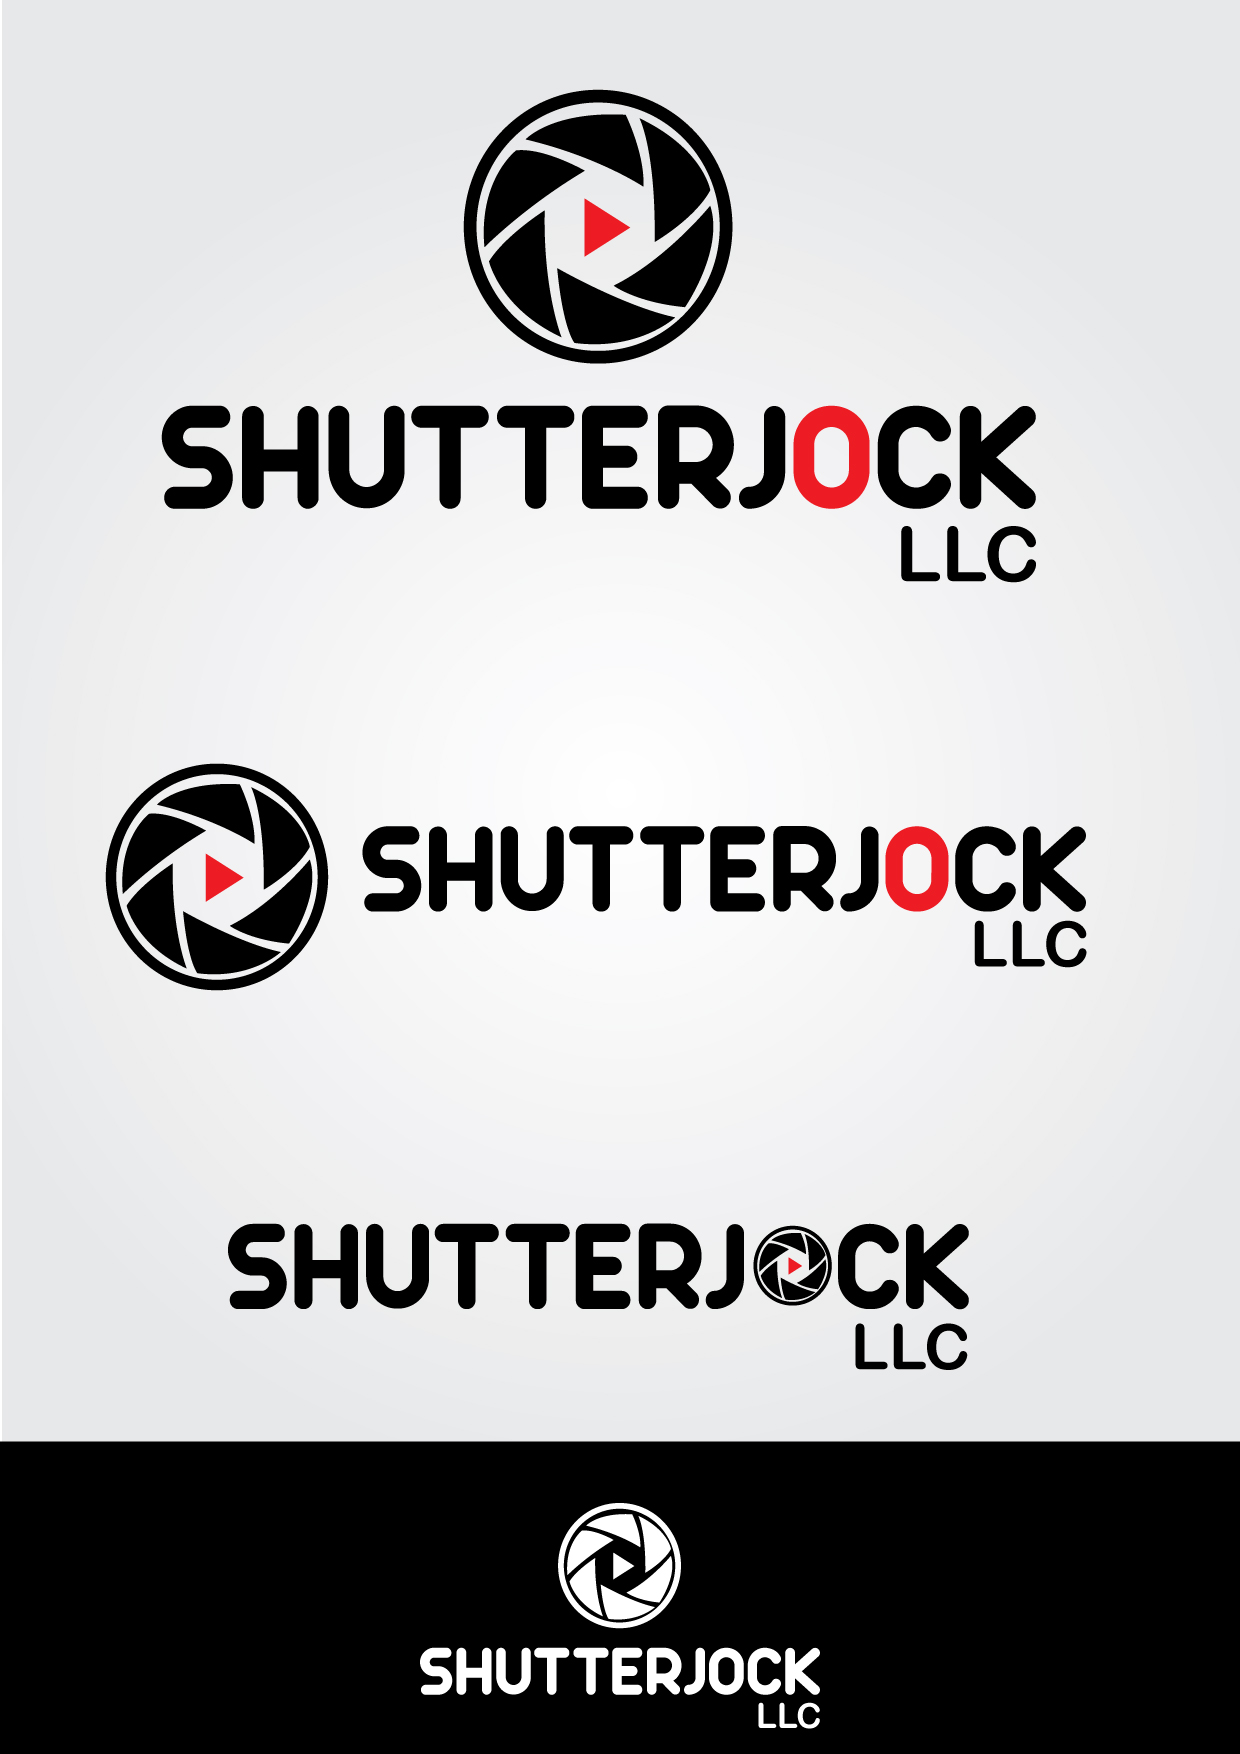 Logo Design by mediaproductionart - Entry No. 55 in the Logo Design Contest Unique Logo Design Wanted for Shutterjock LLC.